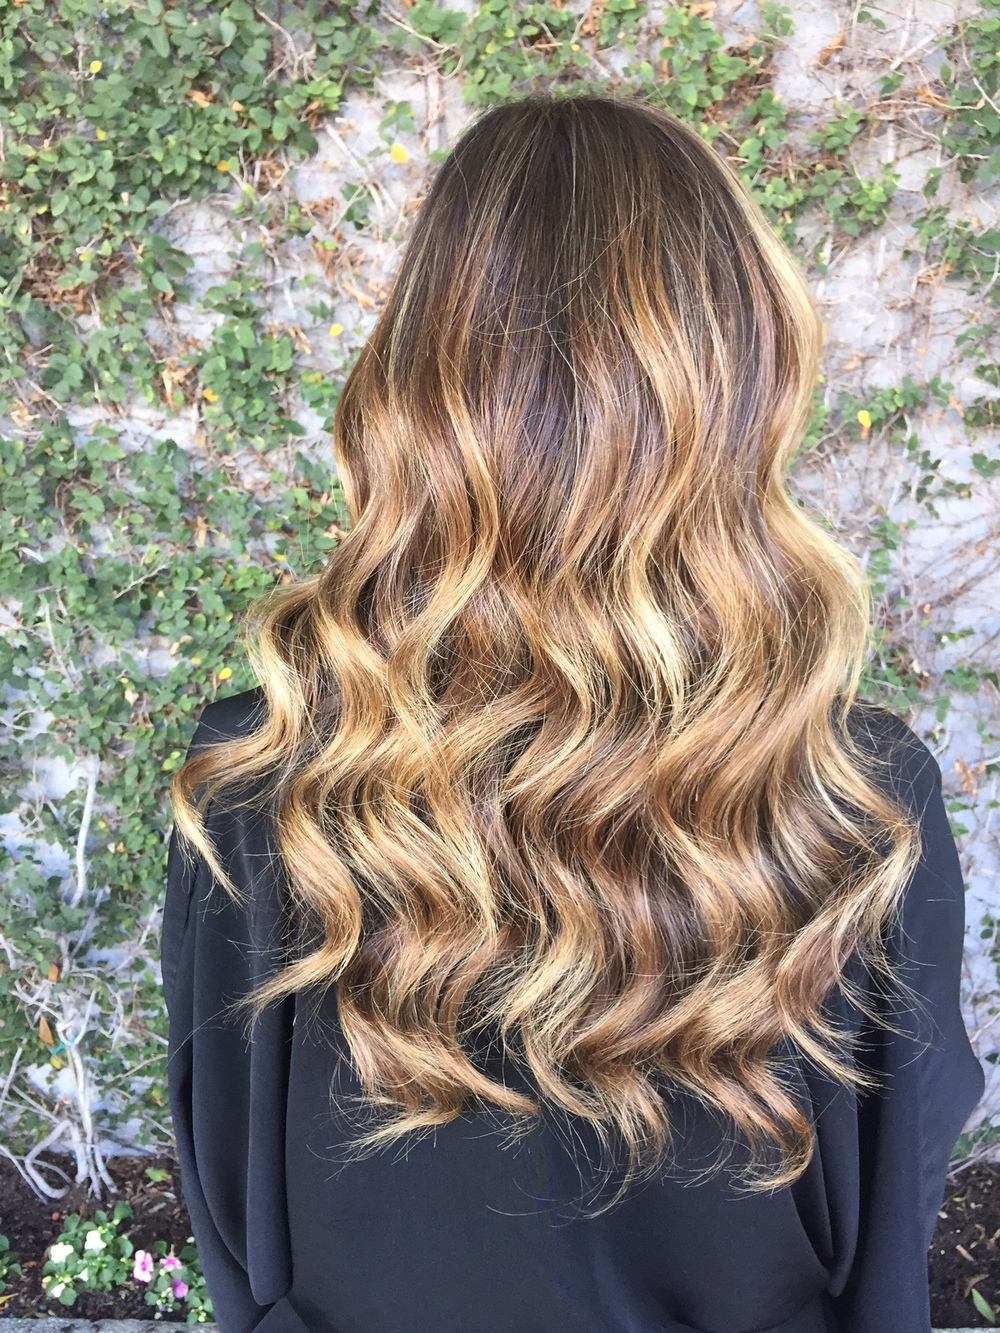 Newest Hair Trend For Gorgeous Sun Kissed Highlights The Glow Girl